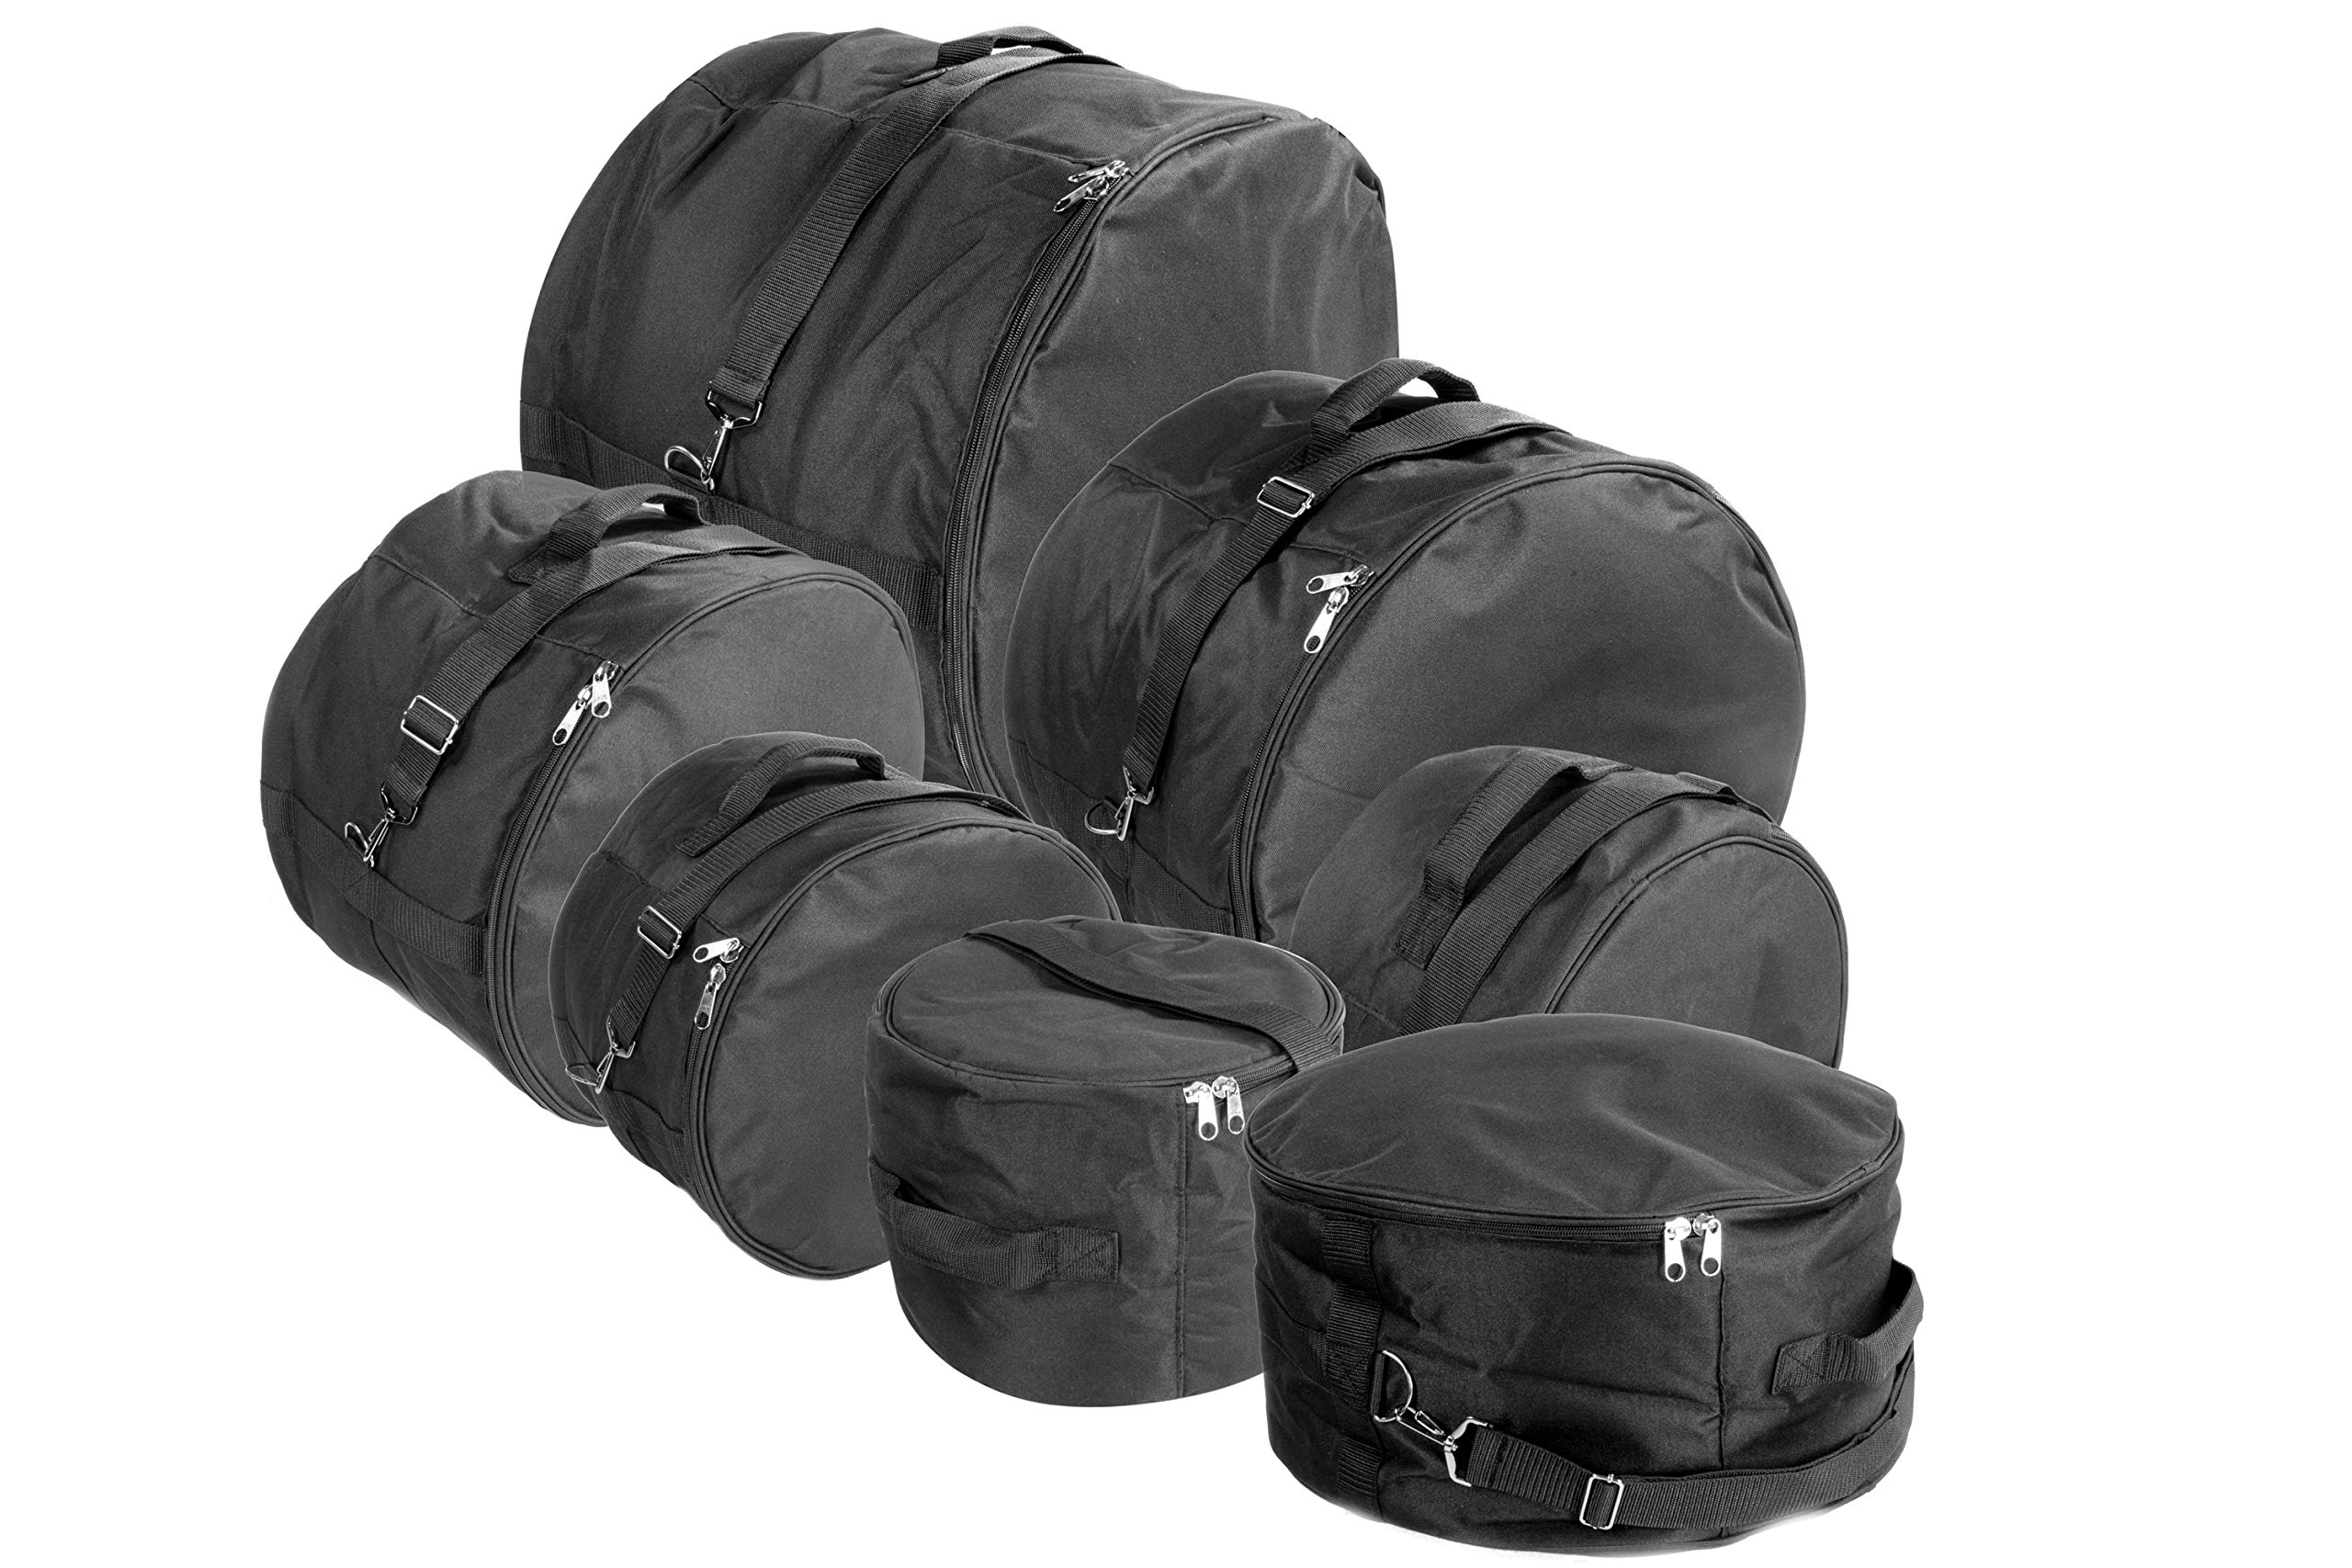 XSPRO DGB-XS7 7 Piece Standard Deluxe Padded Drum Bag Set